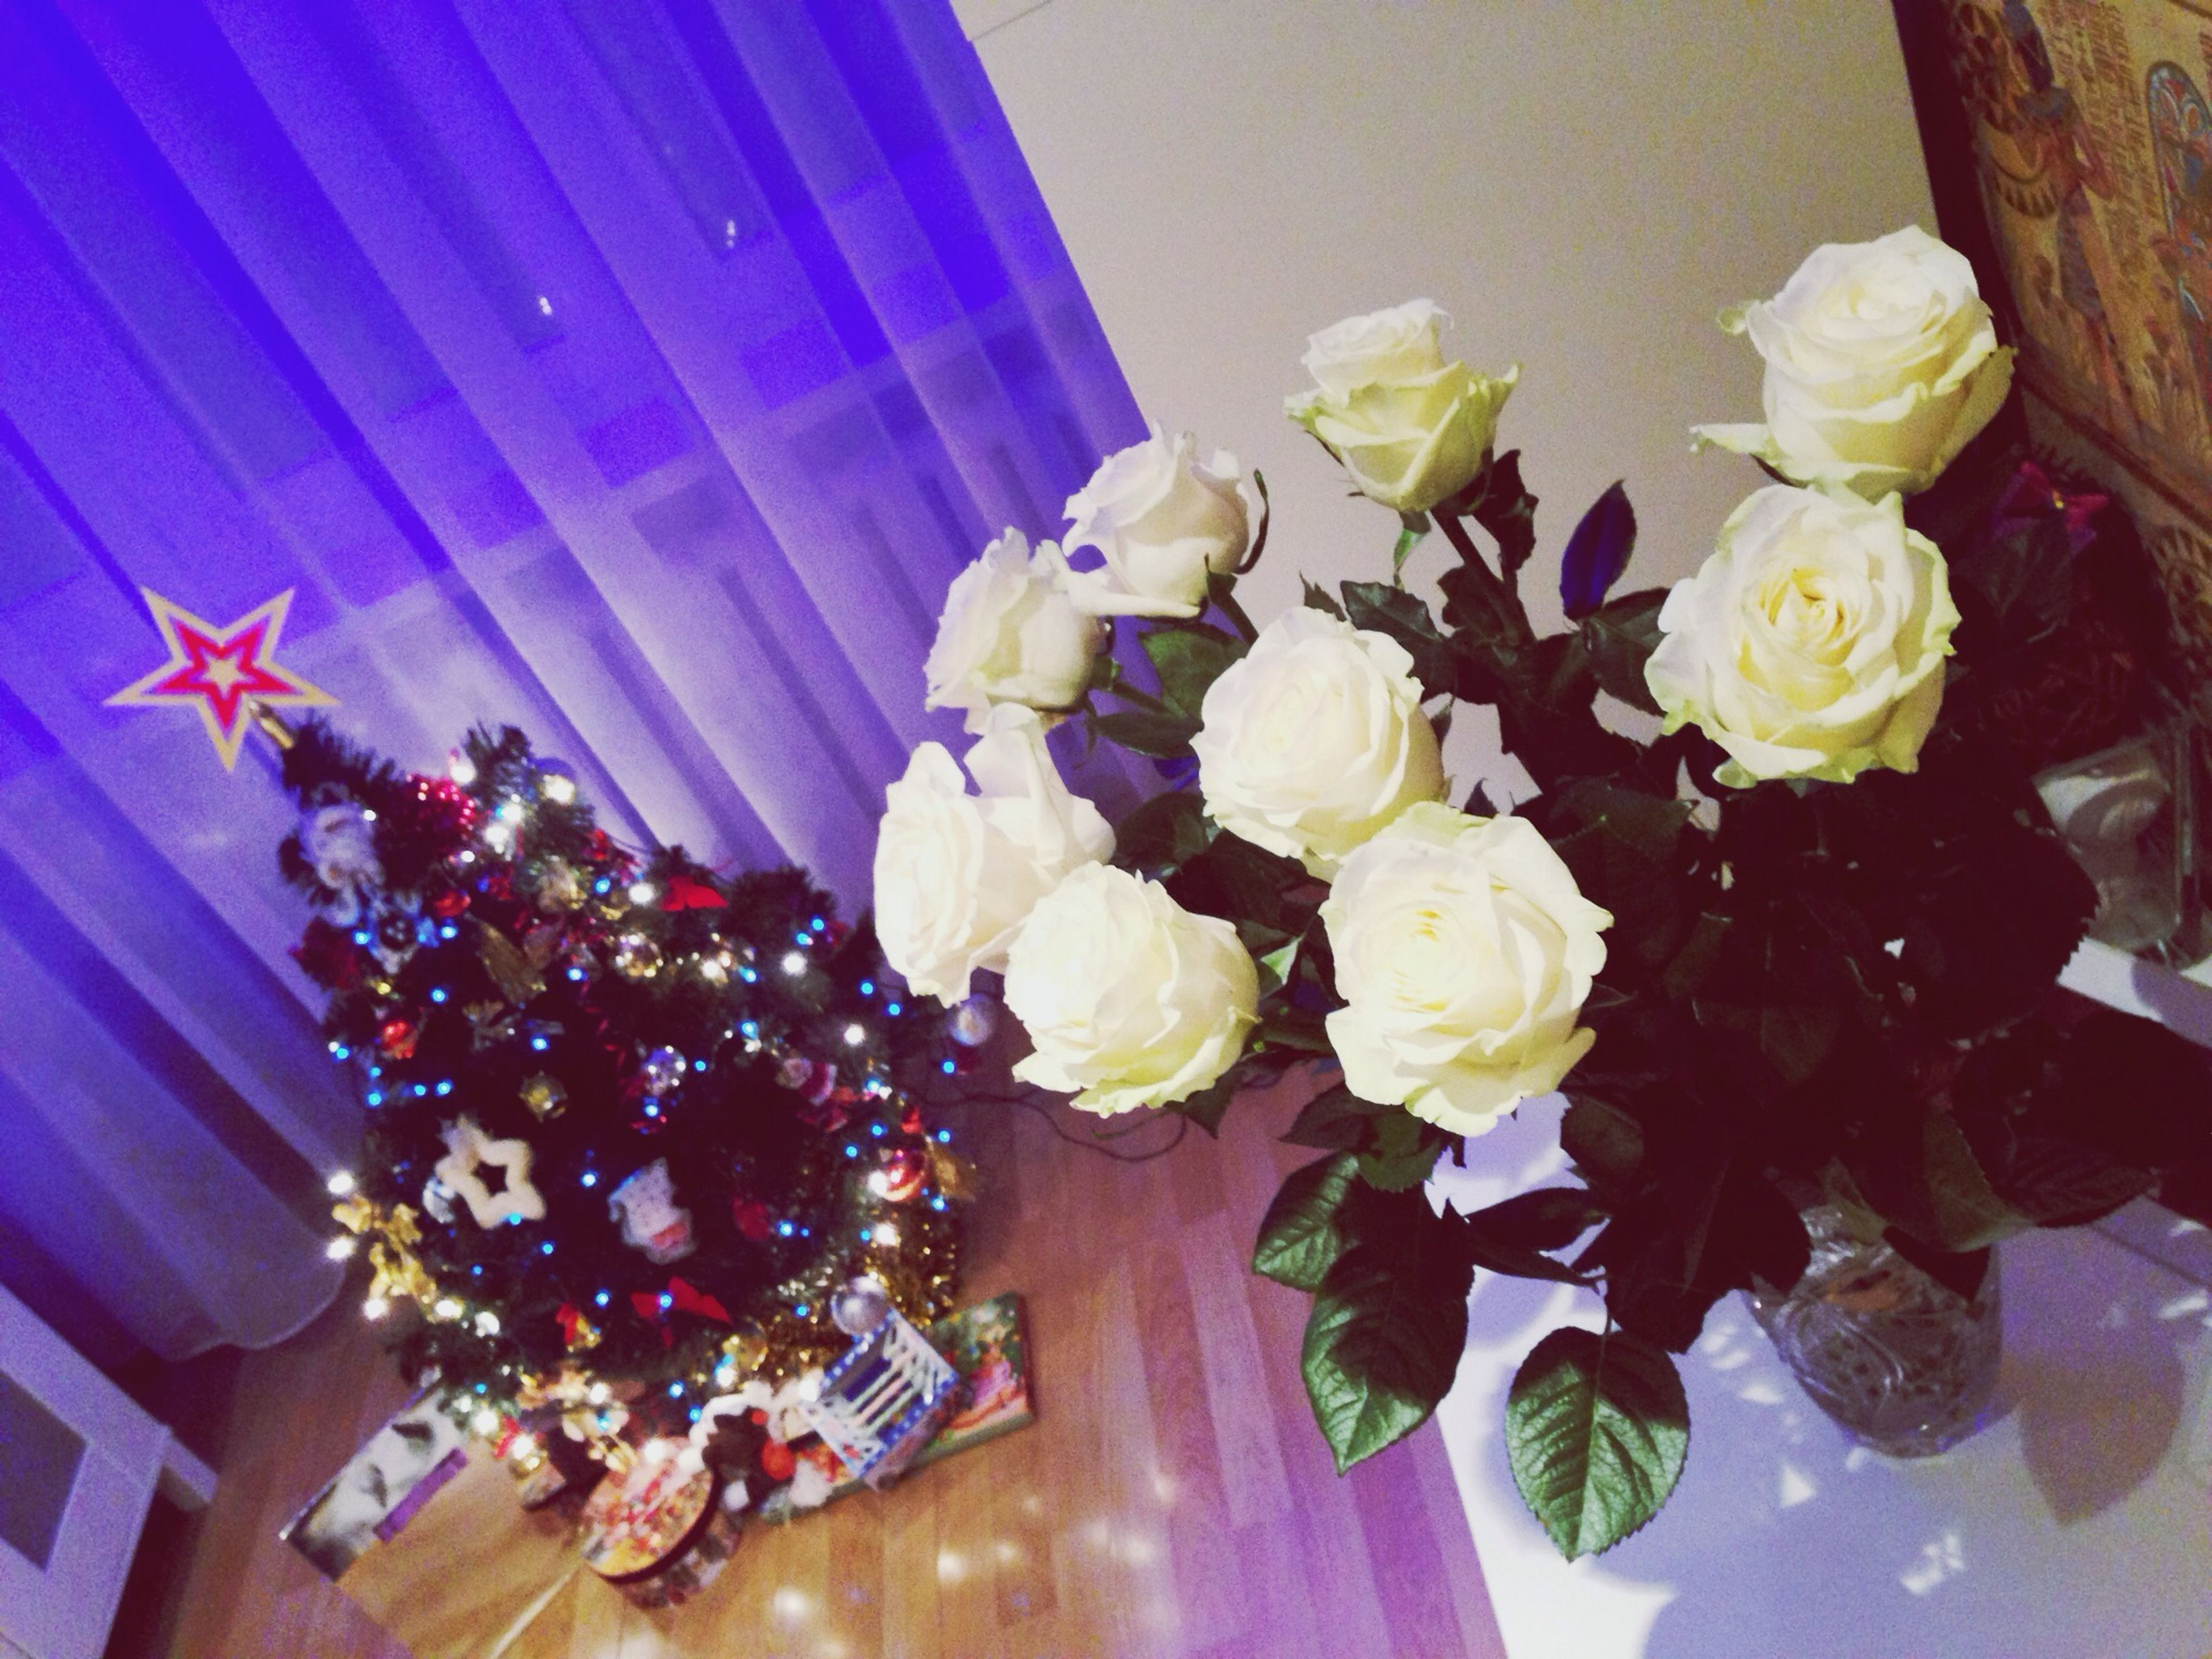 flower, indoors, fragility, decoration, petal, freshness, vase, glass - material, low angle view, illuminated, blue, home interior, bunch of flowers, flower head, beauty in nature, transparent, celebration, window, nature, flower arrangement